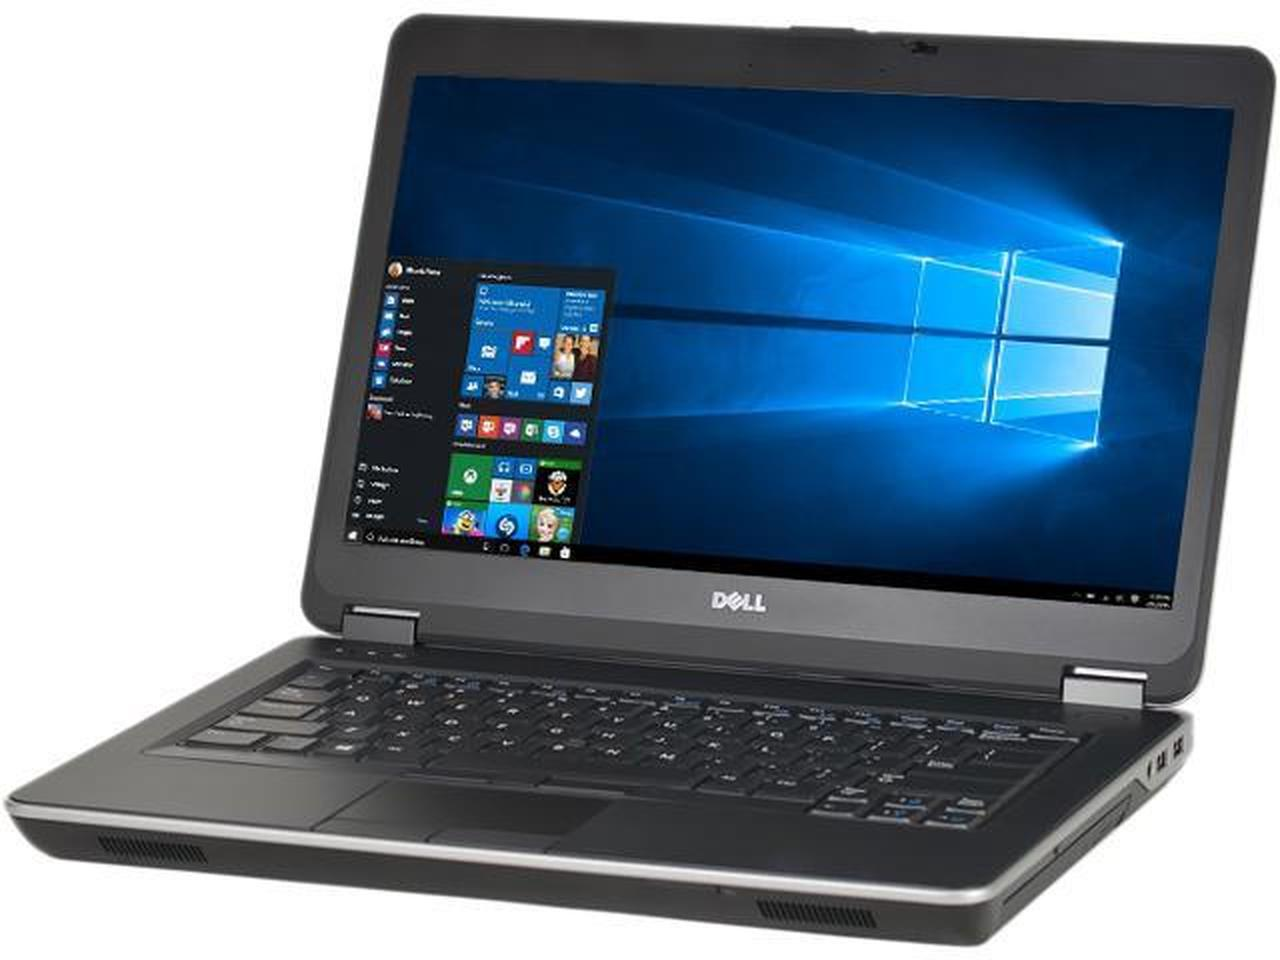 14-inch Dell Latitude E6440 Laptop Image